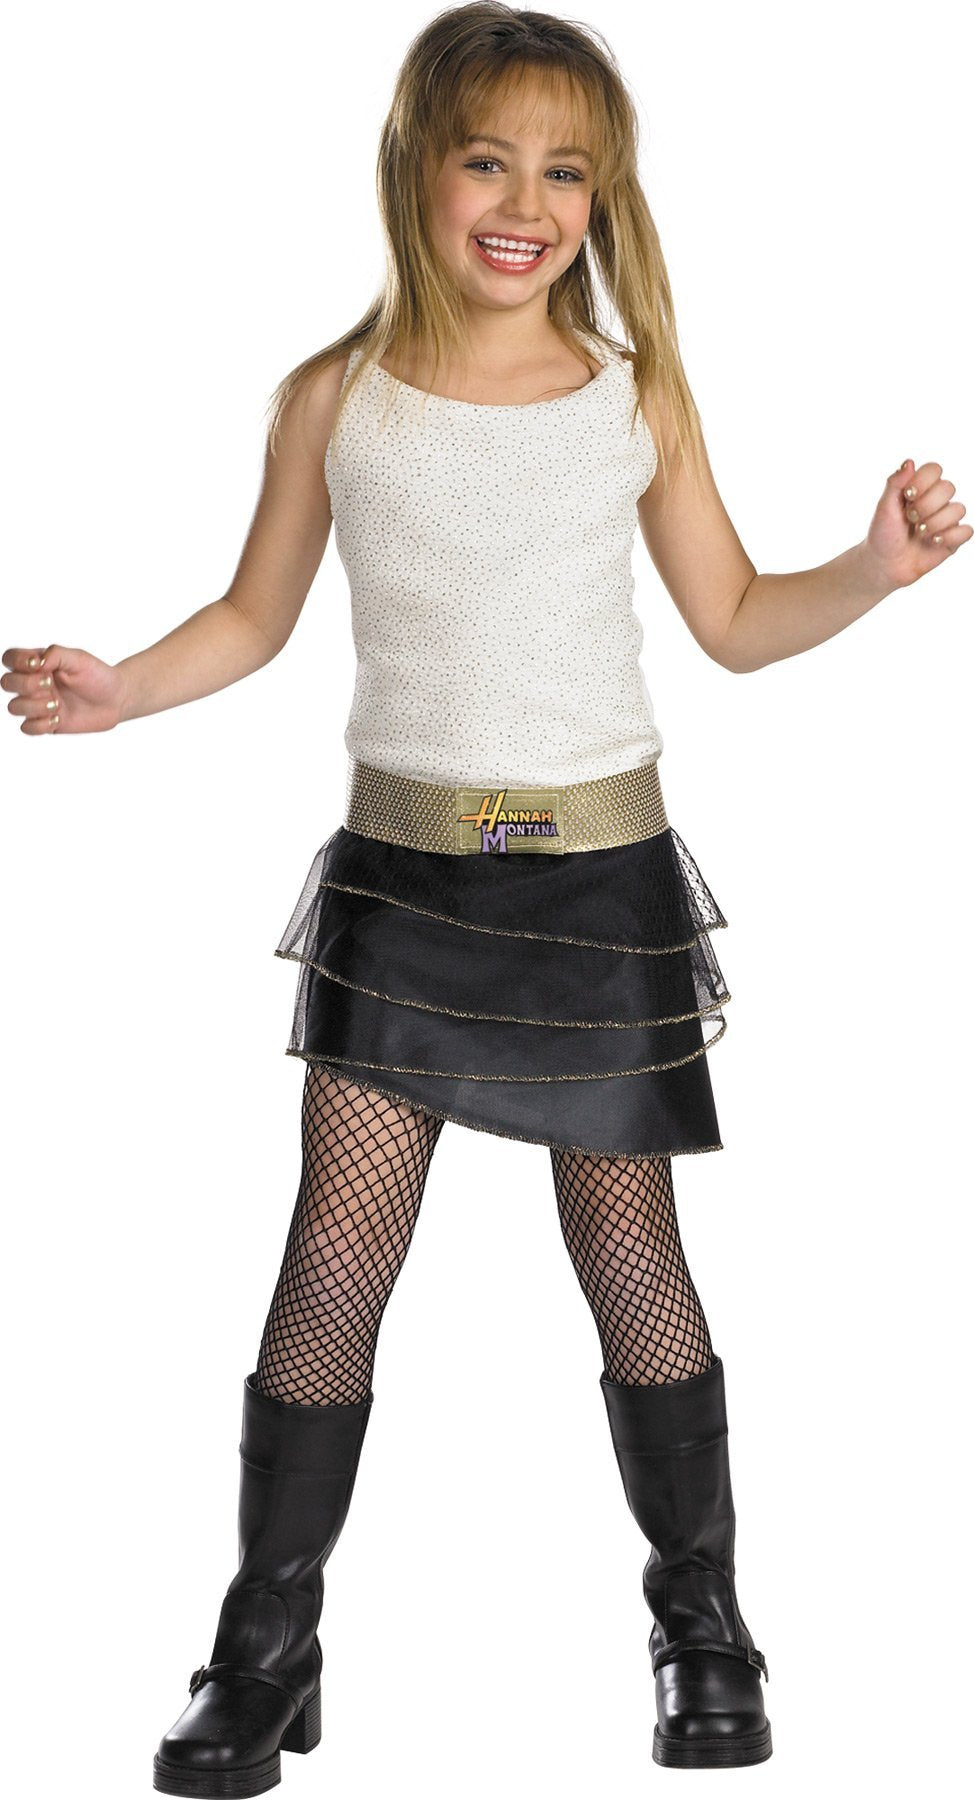 Disney Hannah Montana Quality Costume 10-12 - Baby World Inc